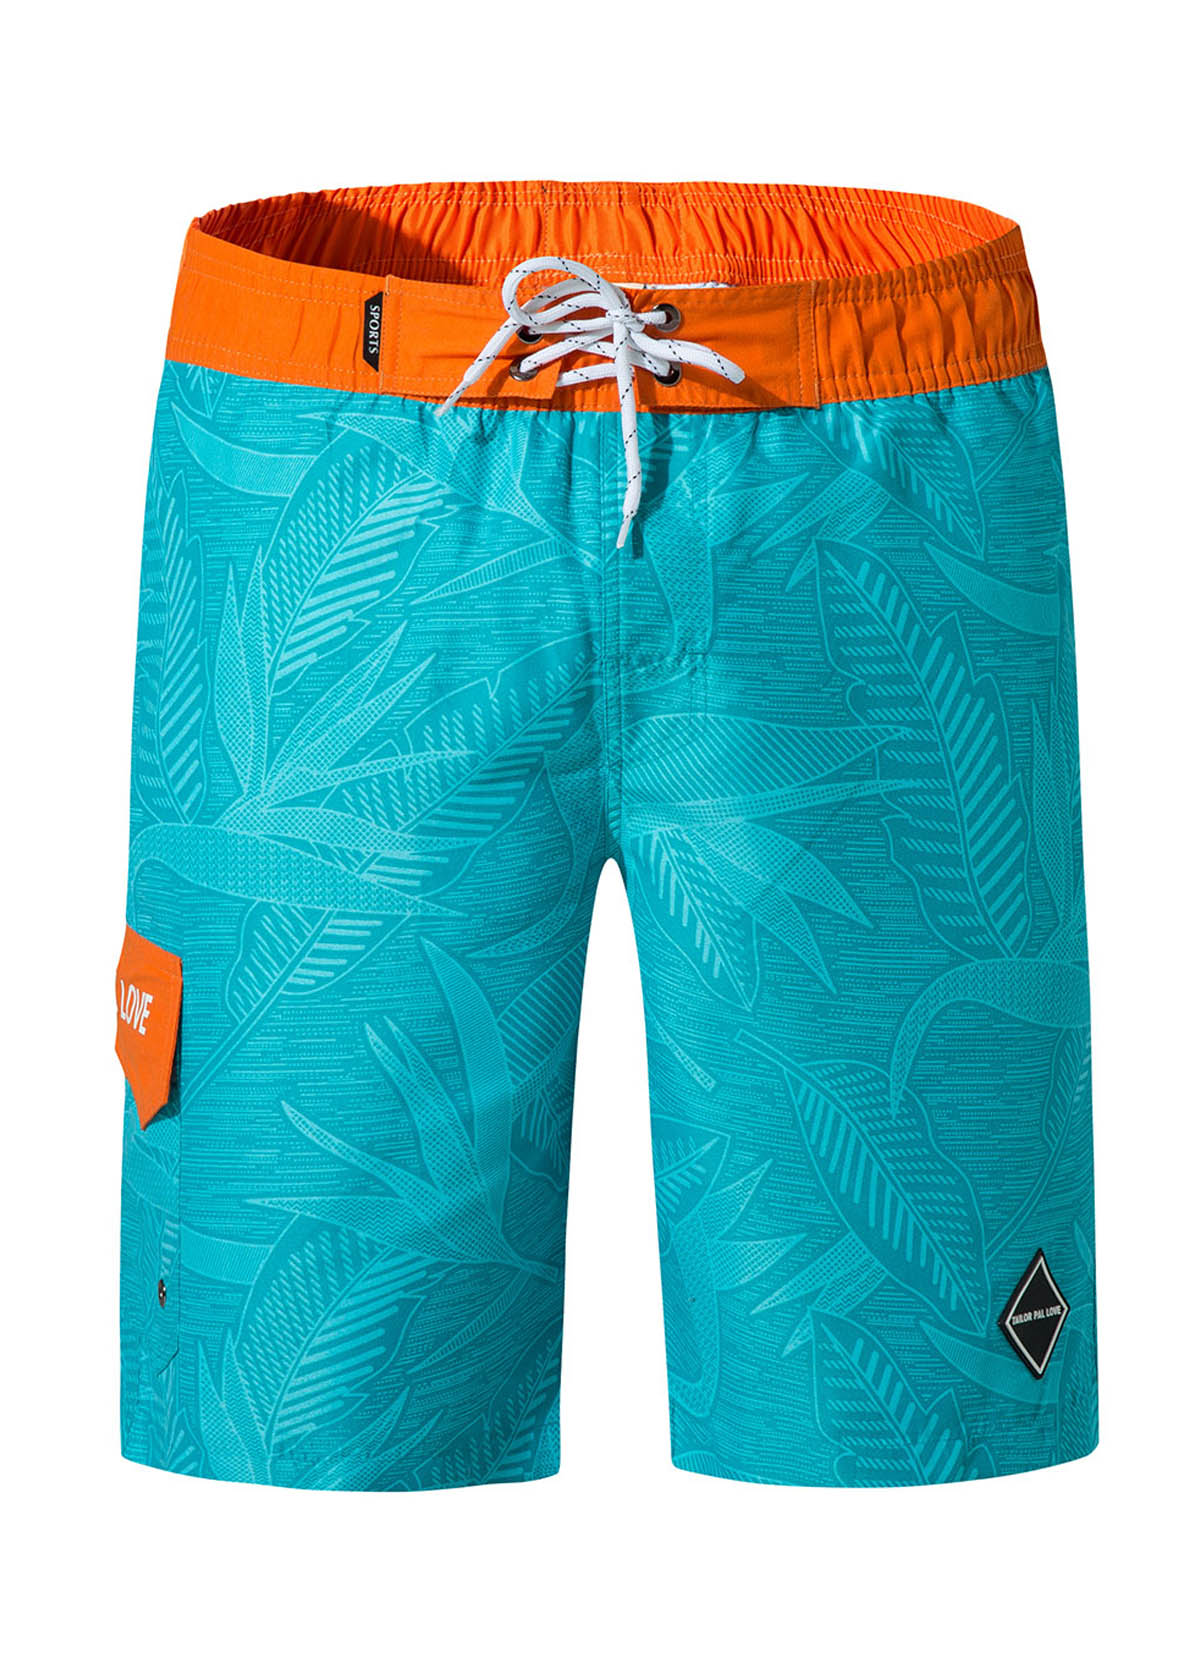 Bermuda Shorts Coconut Tree Print Beach Shorts with Mesh Lining